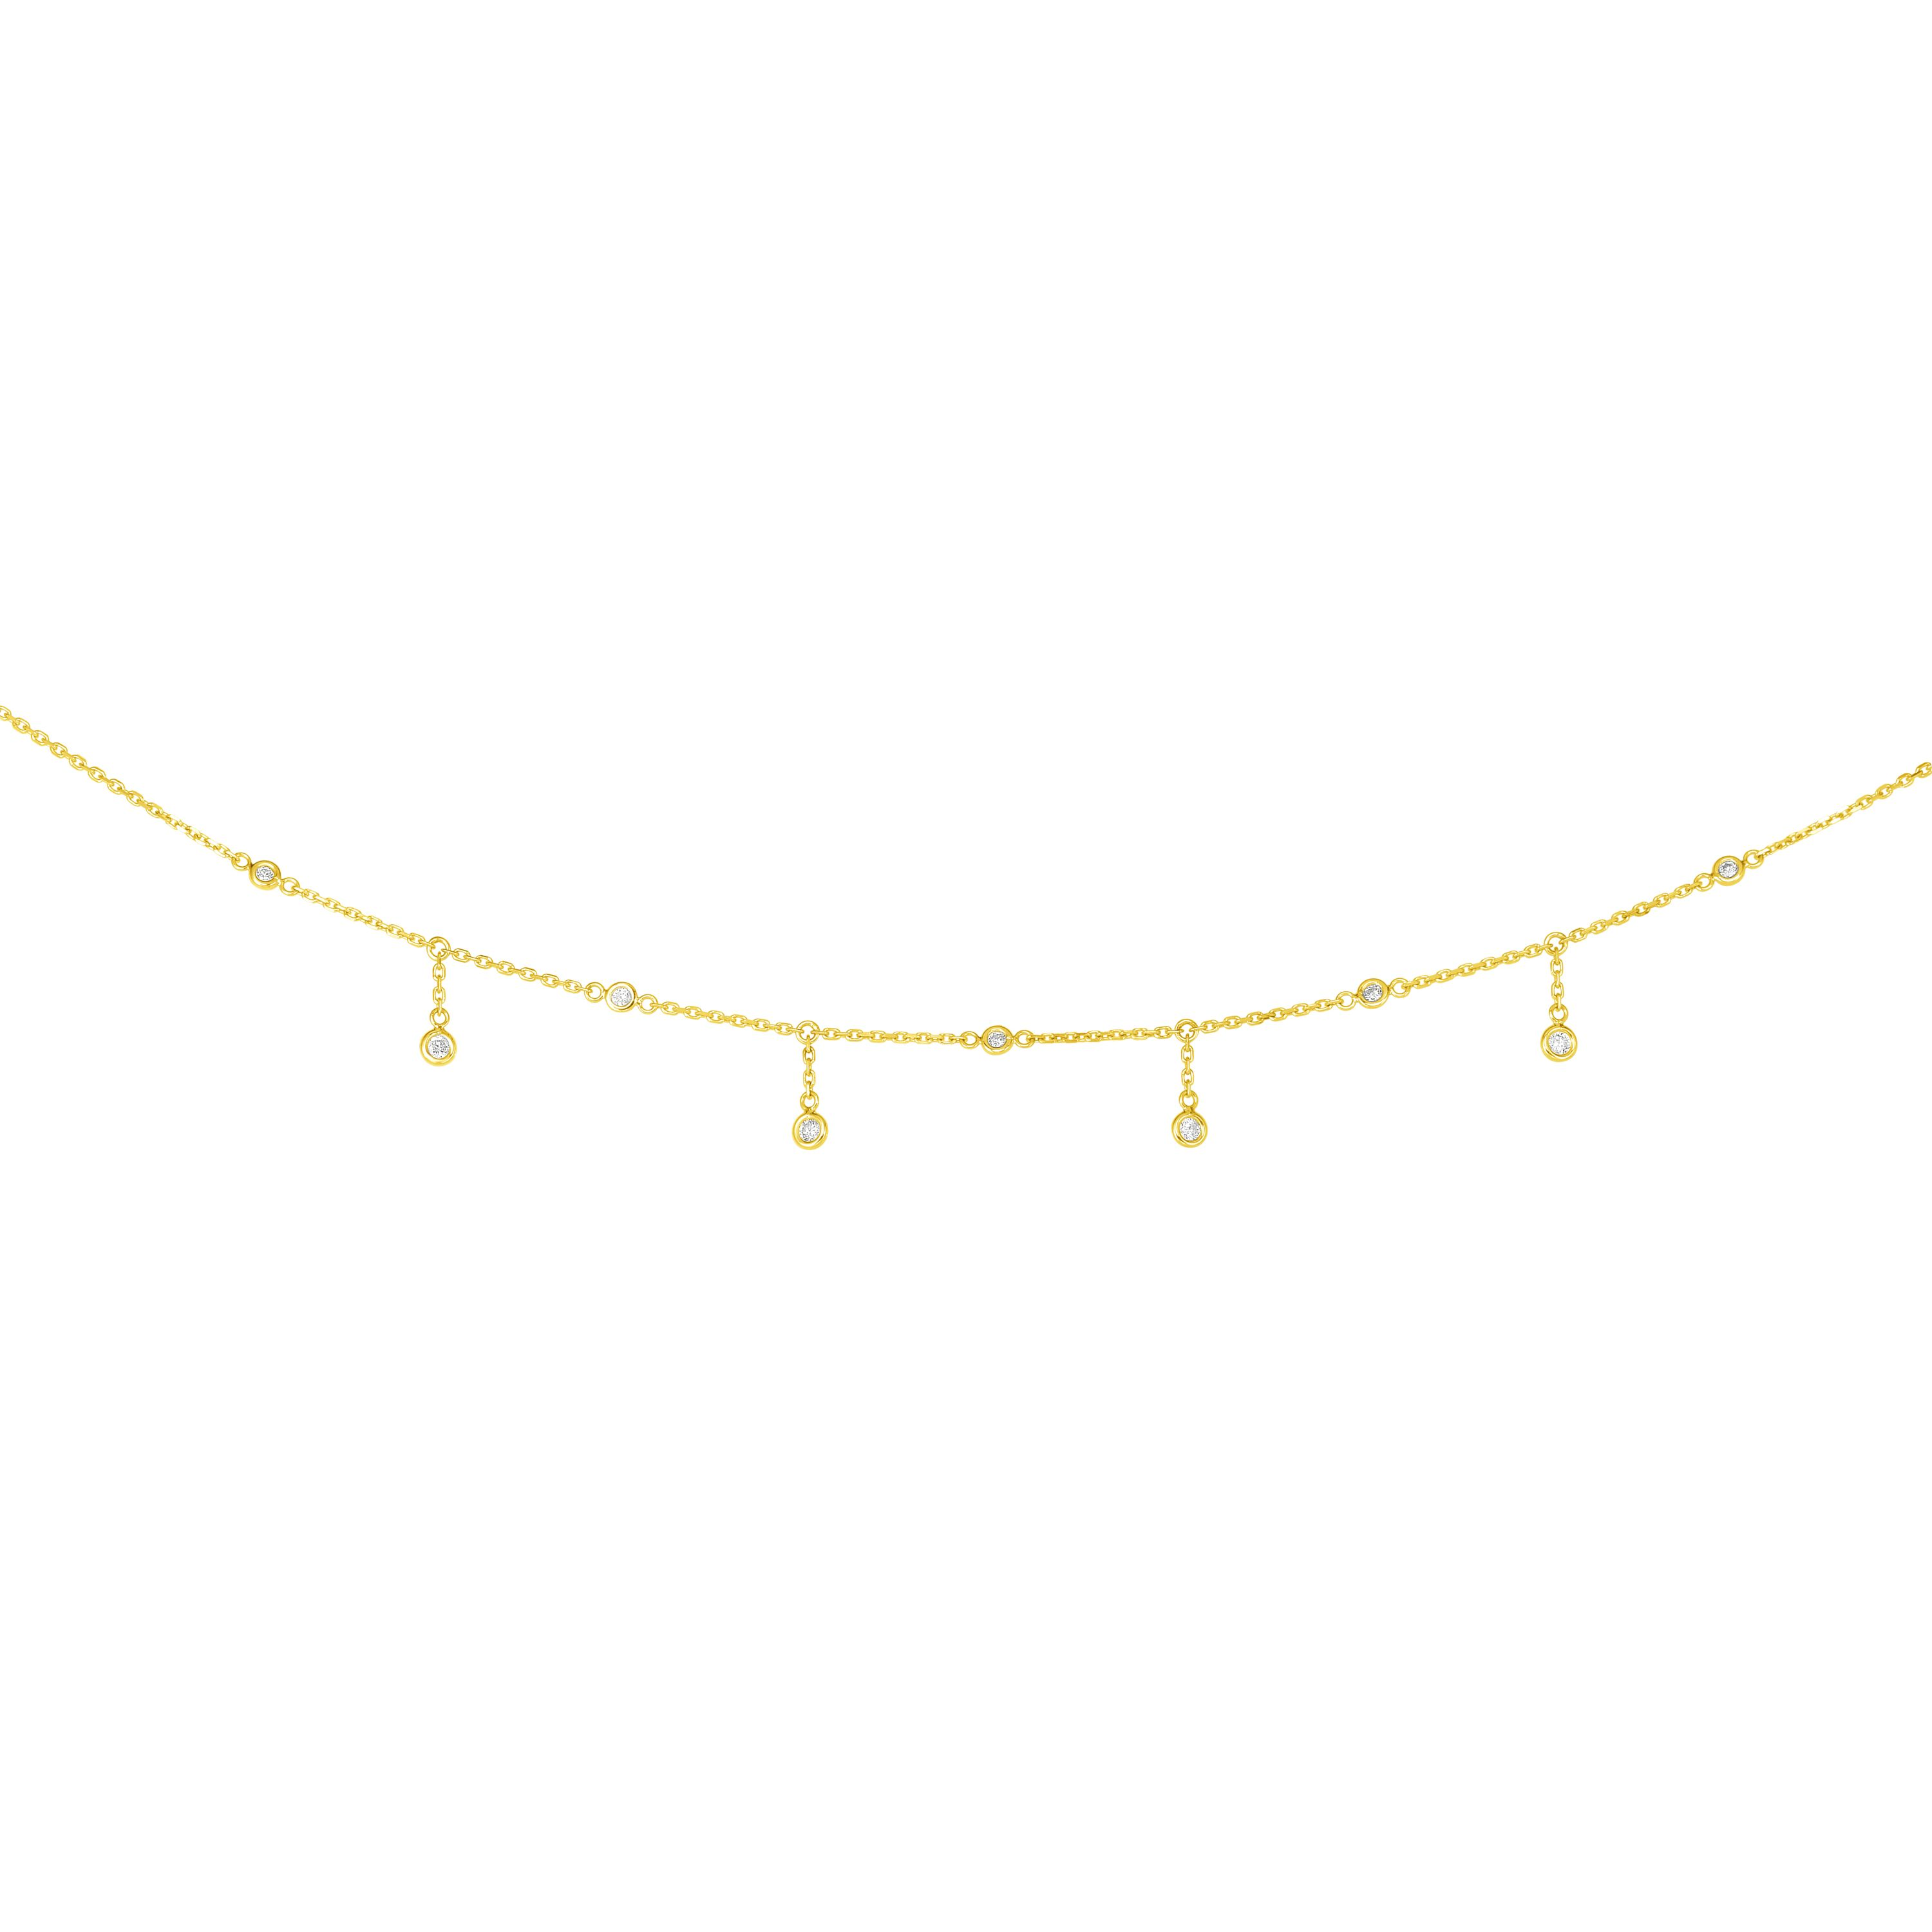 14K Yellow Gold Diamond Necklace by Royal Chain